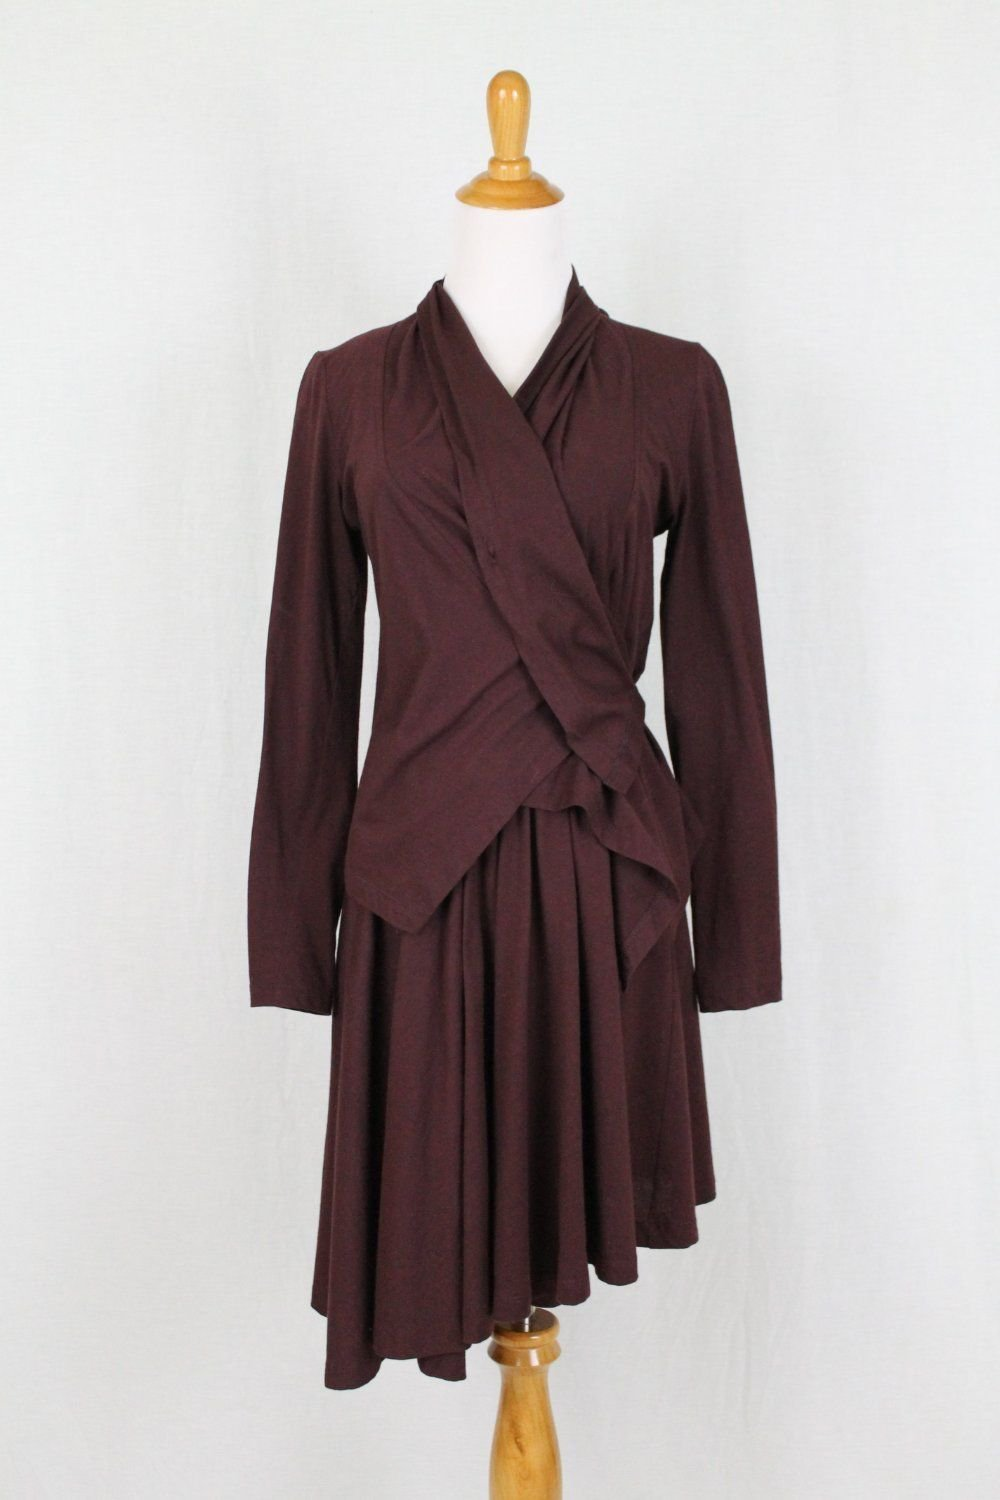 Morgane Le Fay Burgundy Asymmetrical Hem Sleeveless Ballerina Dress & Jacket XS